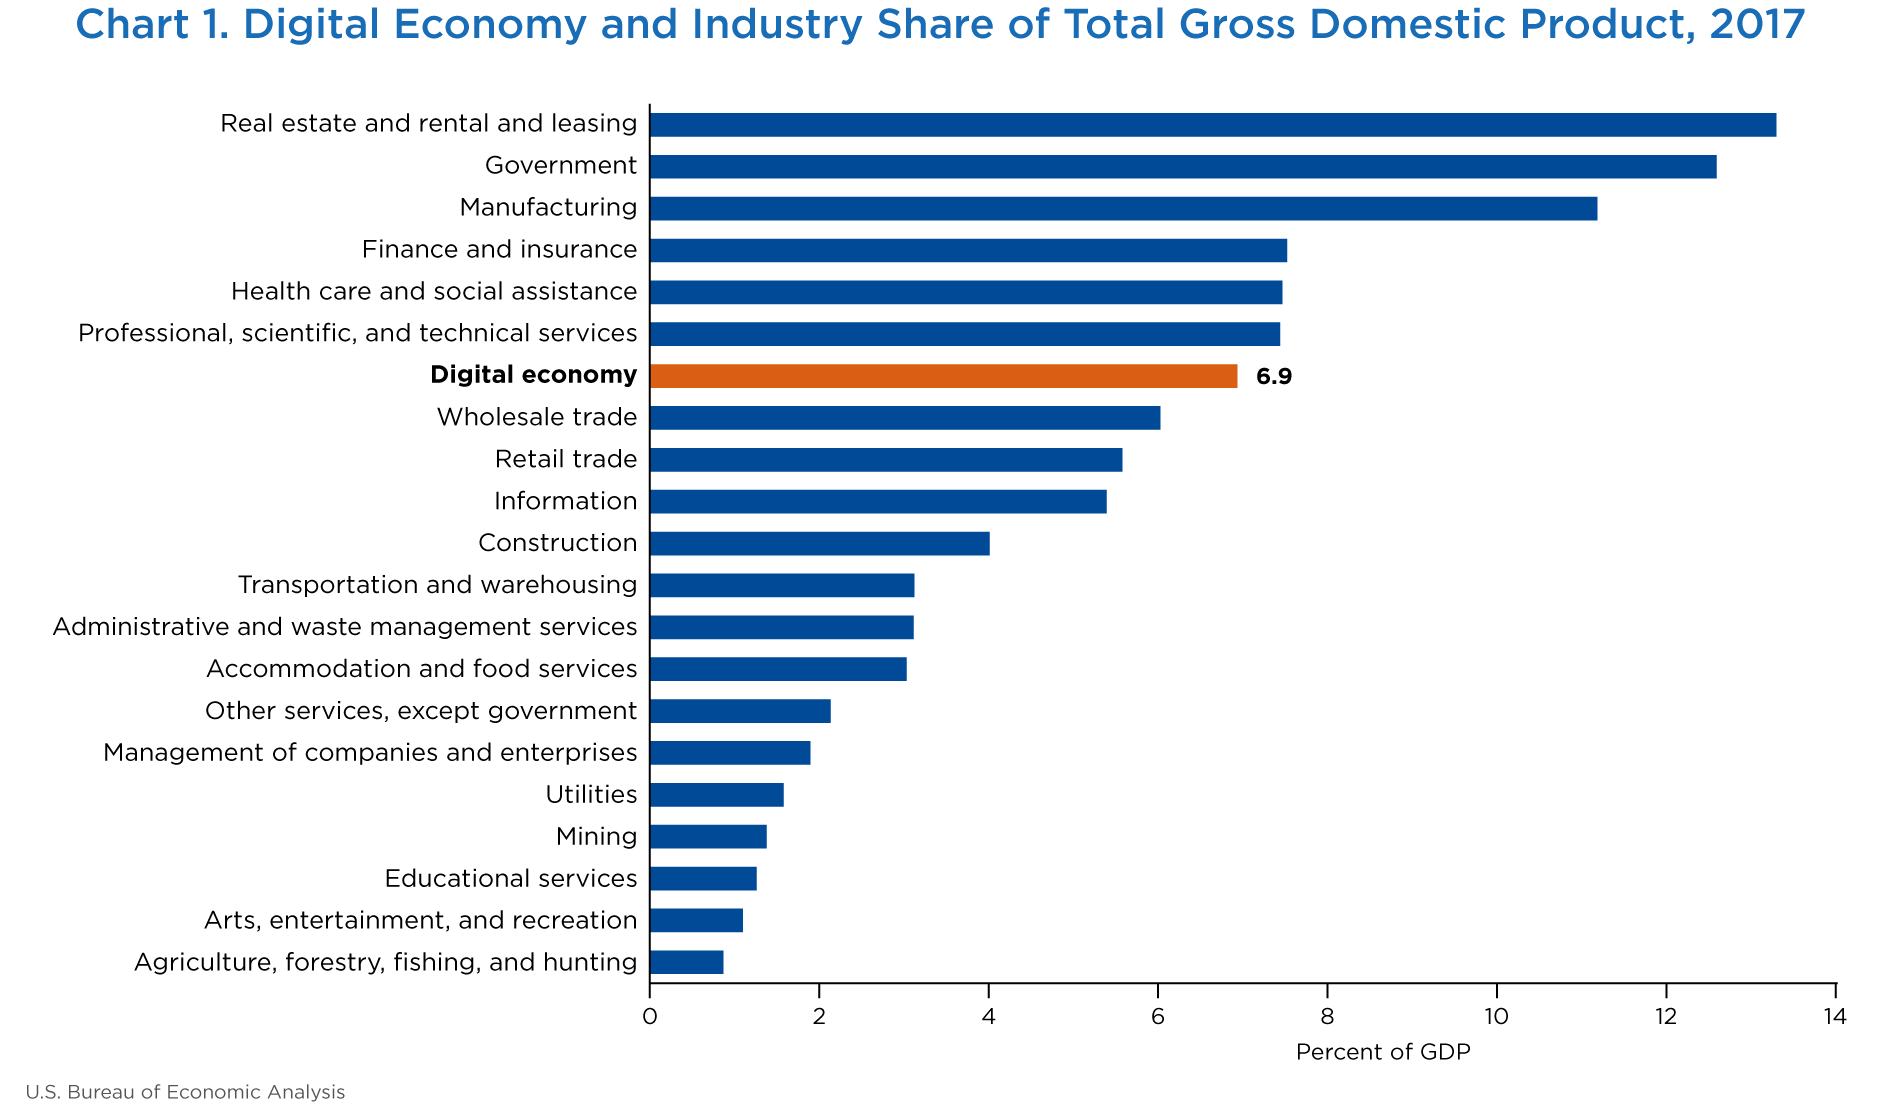 Chart 1. Digital Economy and Industry Share of Total Gross Domestic Product, 2017. Bar chart.